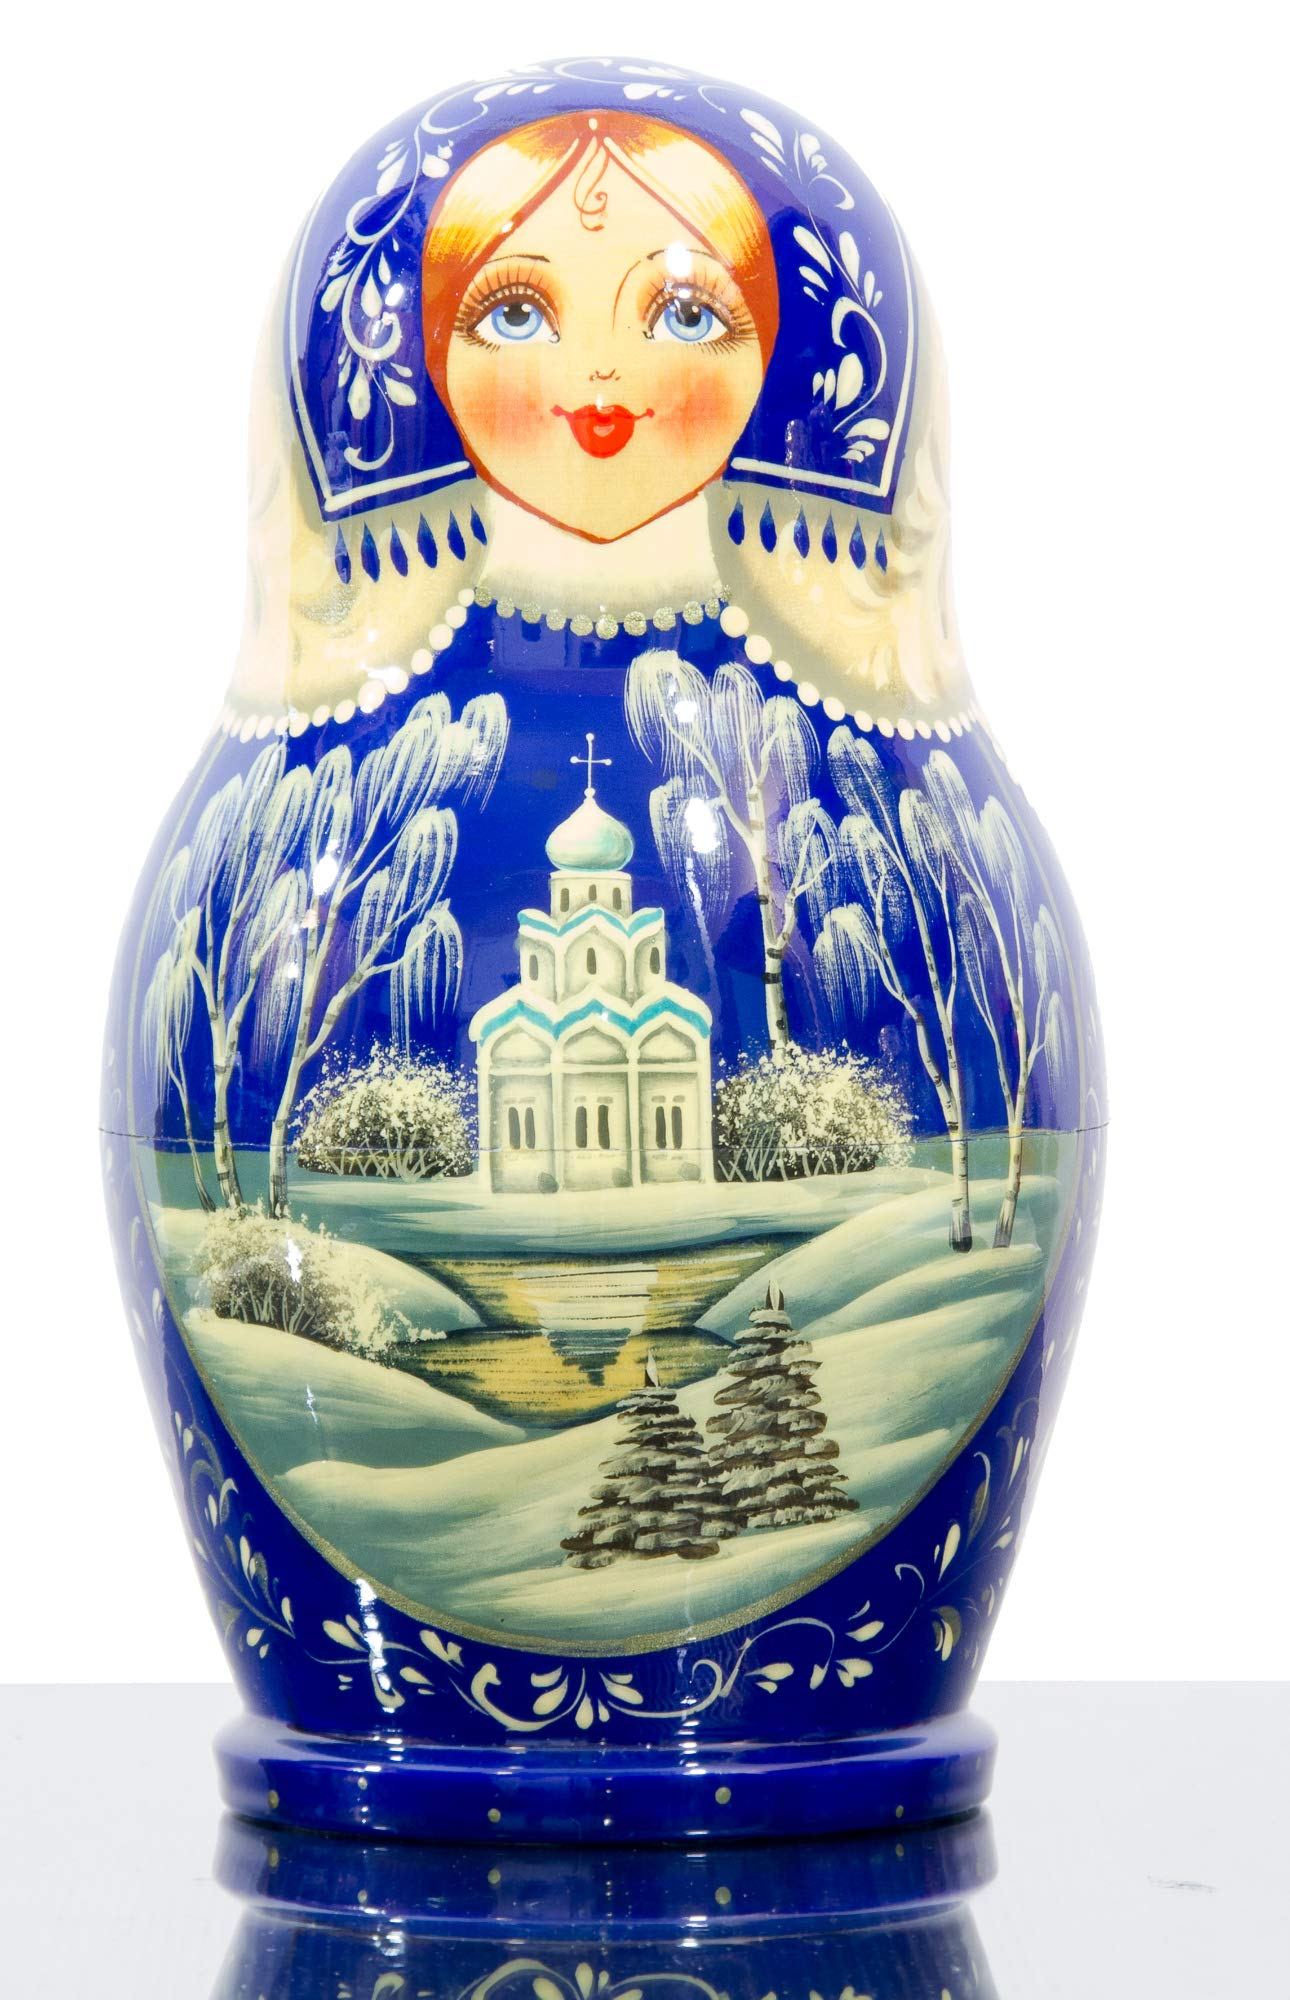 Russian Nesting Doll - Kirov - VJATKA - Hand Painted in Russia - Big Size - Wooden Decoration Gift Doll - Matryoshka Babushka (Style E, 8.25``(10 Dolls in 1)) by craftsfromrussia (Image #7)